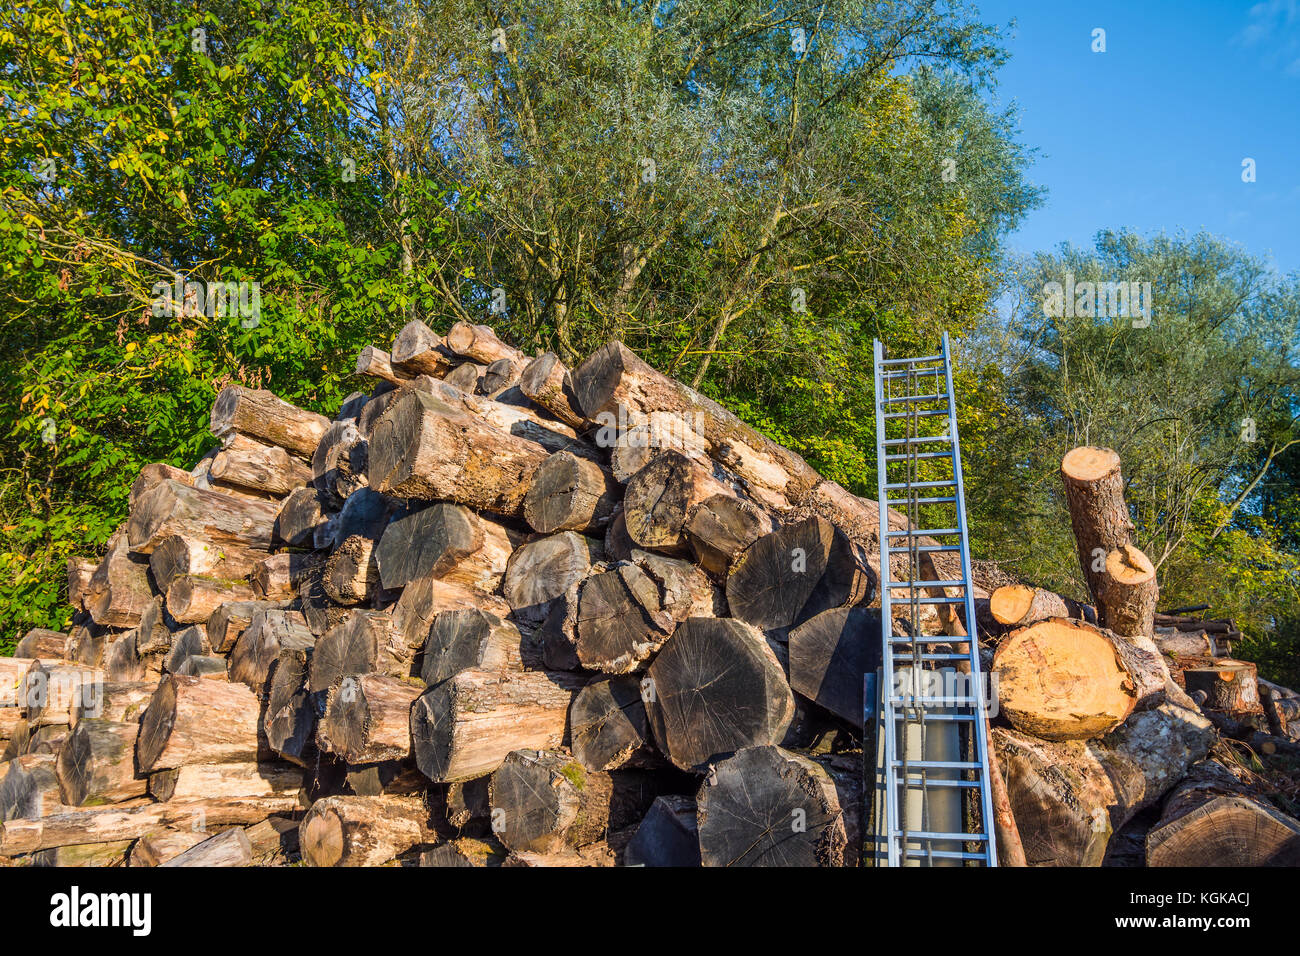 Stack of felled tree trunks - France. - Stock Image